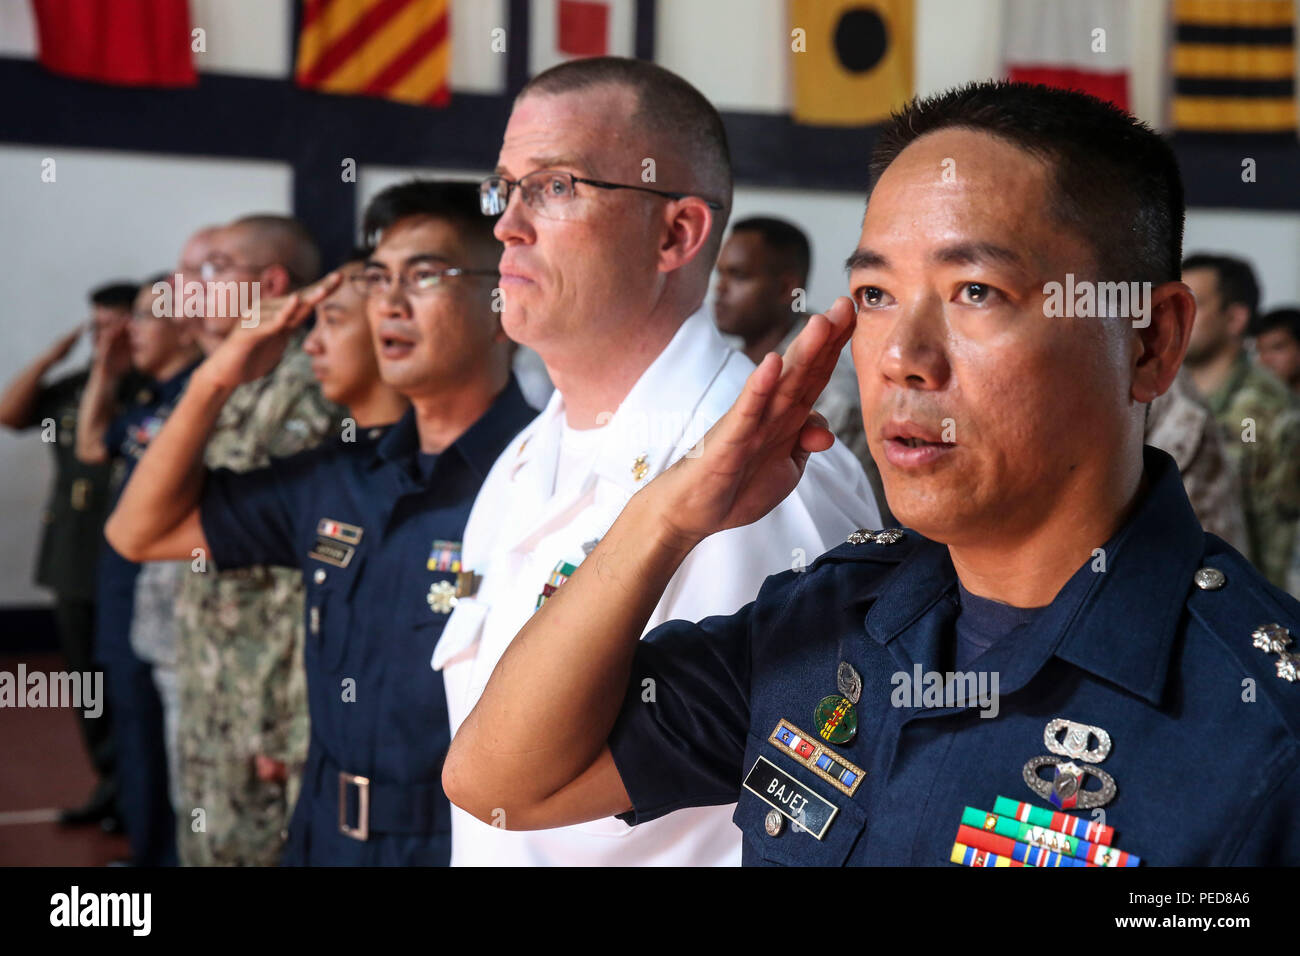 150806-M-GO800-040 SAN FERNANDO CITY, Philippines (August 6, 2015) – Philippine service members salute and U.S. service members stand at attention while the Philippine national anthem plays during an opening ceremony Aug. 6. Task Force Forager will be in the Philippines until Aug. 15 providing medical and engineering assistance. Task Force Forager, embarked aboard the Military Sealift Command joint high speed vessel USNS Millinocket (JHSV 3) is serving as the secondary platform for Pacific Partnership, led by an expeditionary command element from the Navy's 30th Naval Construction Regiment (30 - Stock Image